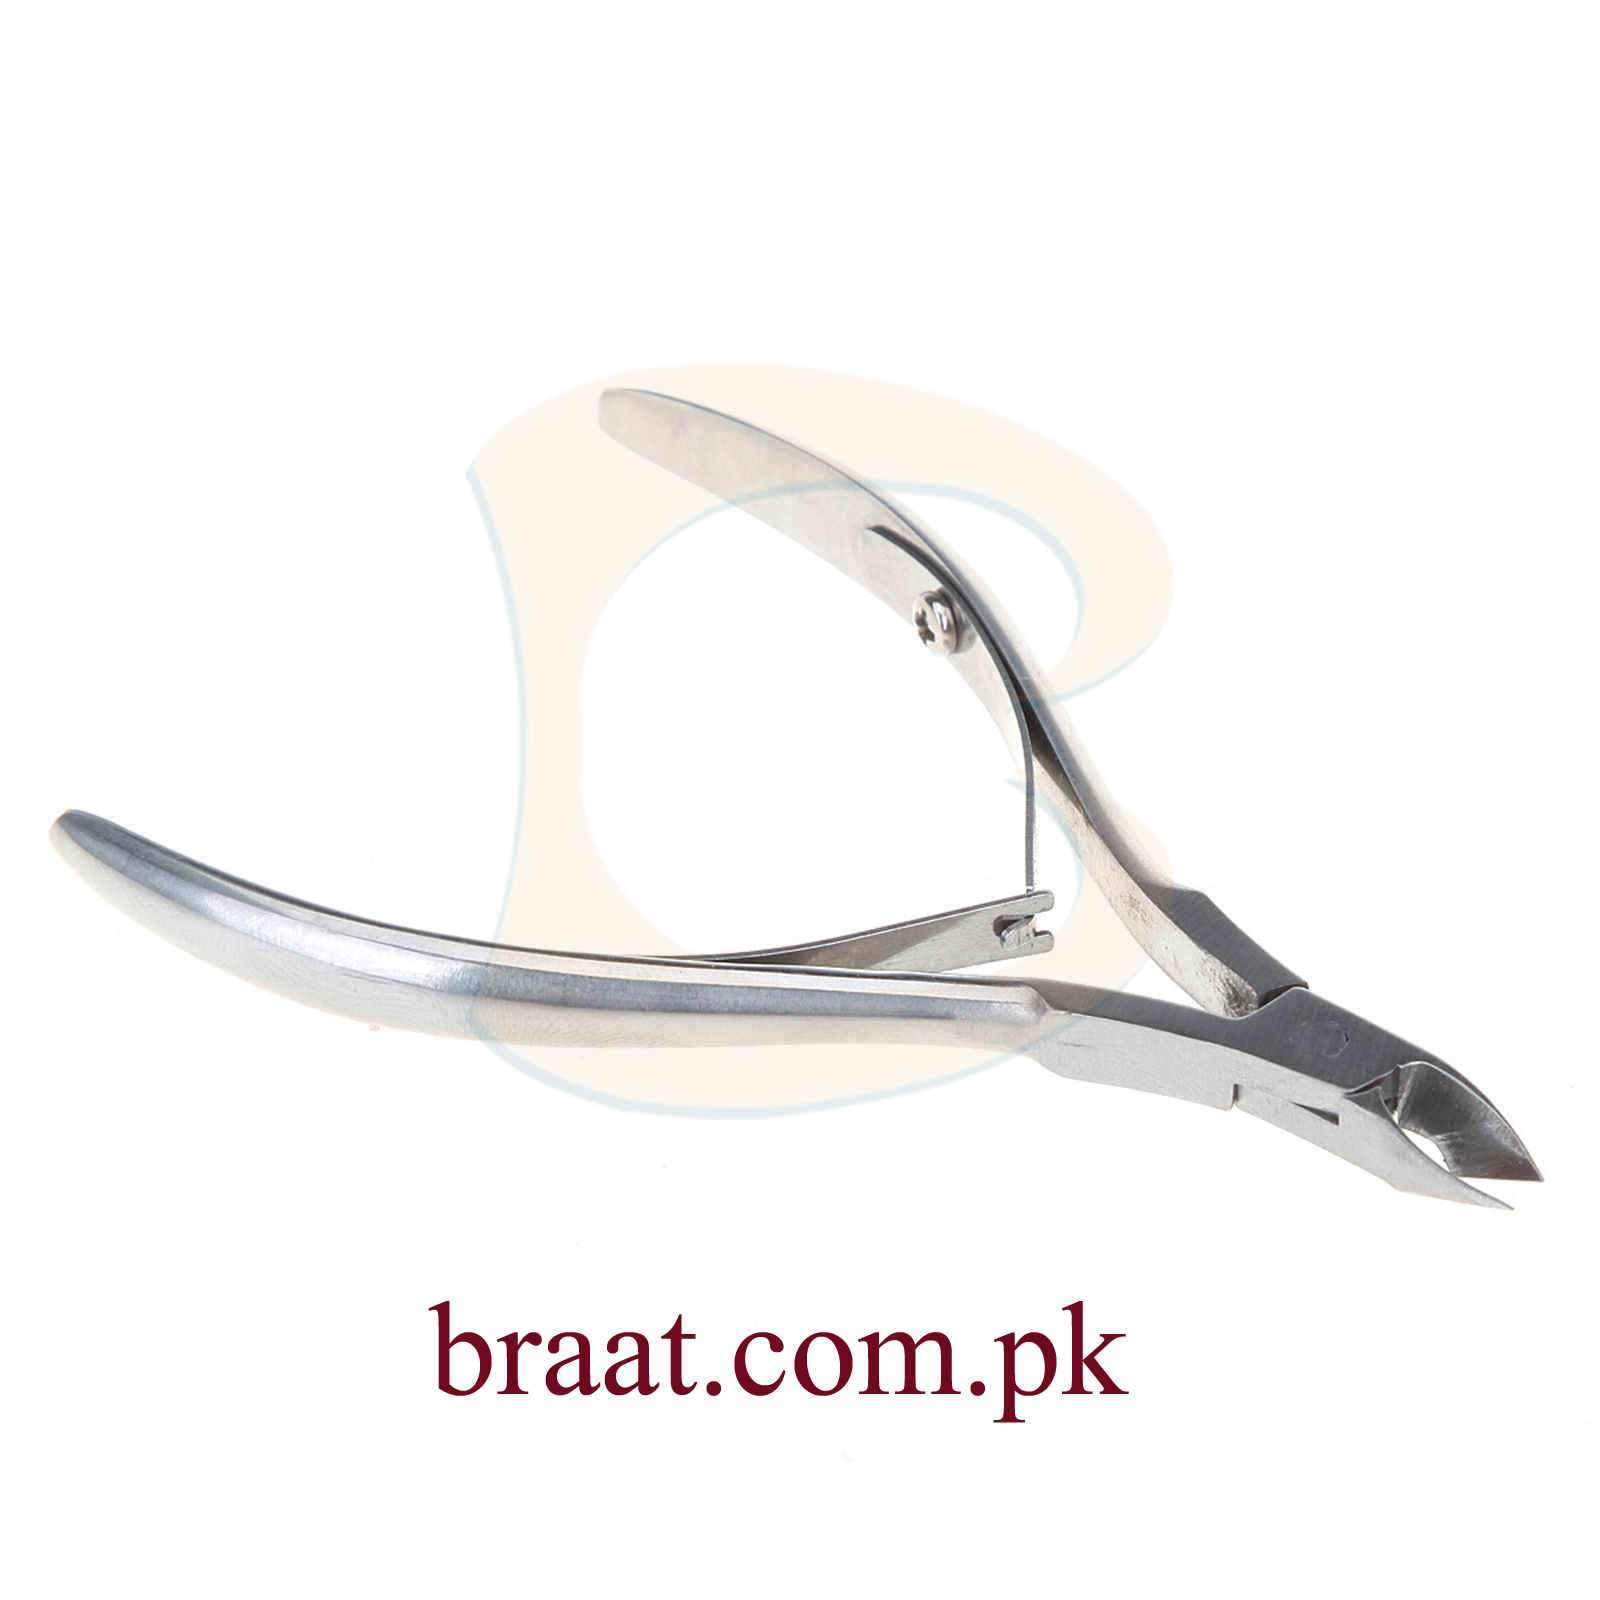 professional stainlesss cuticle nippers / nipper cutter / professional sharp nail nippers